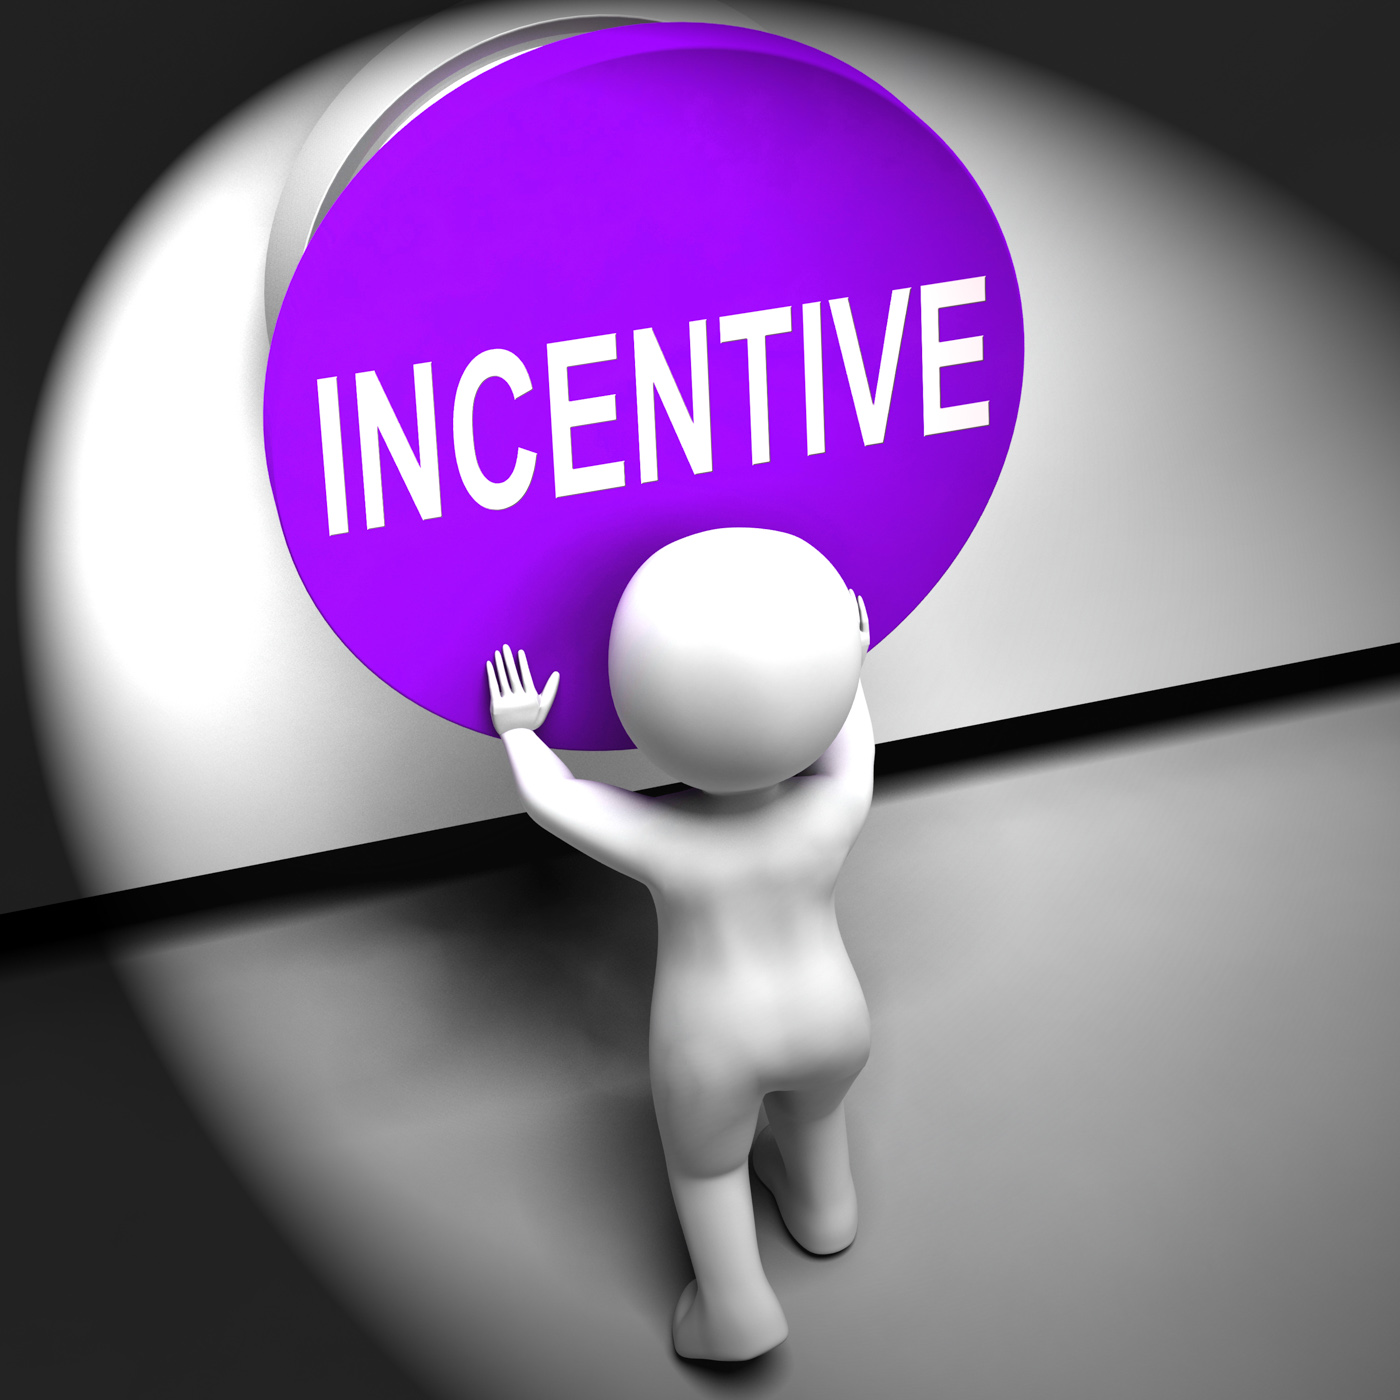 Incentive Pressed Means Bonus Reward And Motivation, Motivational, Offer, Premium, Motivation, HQ Photo